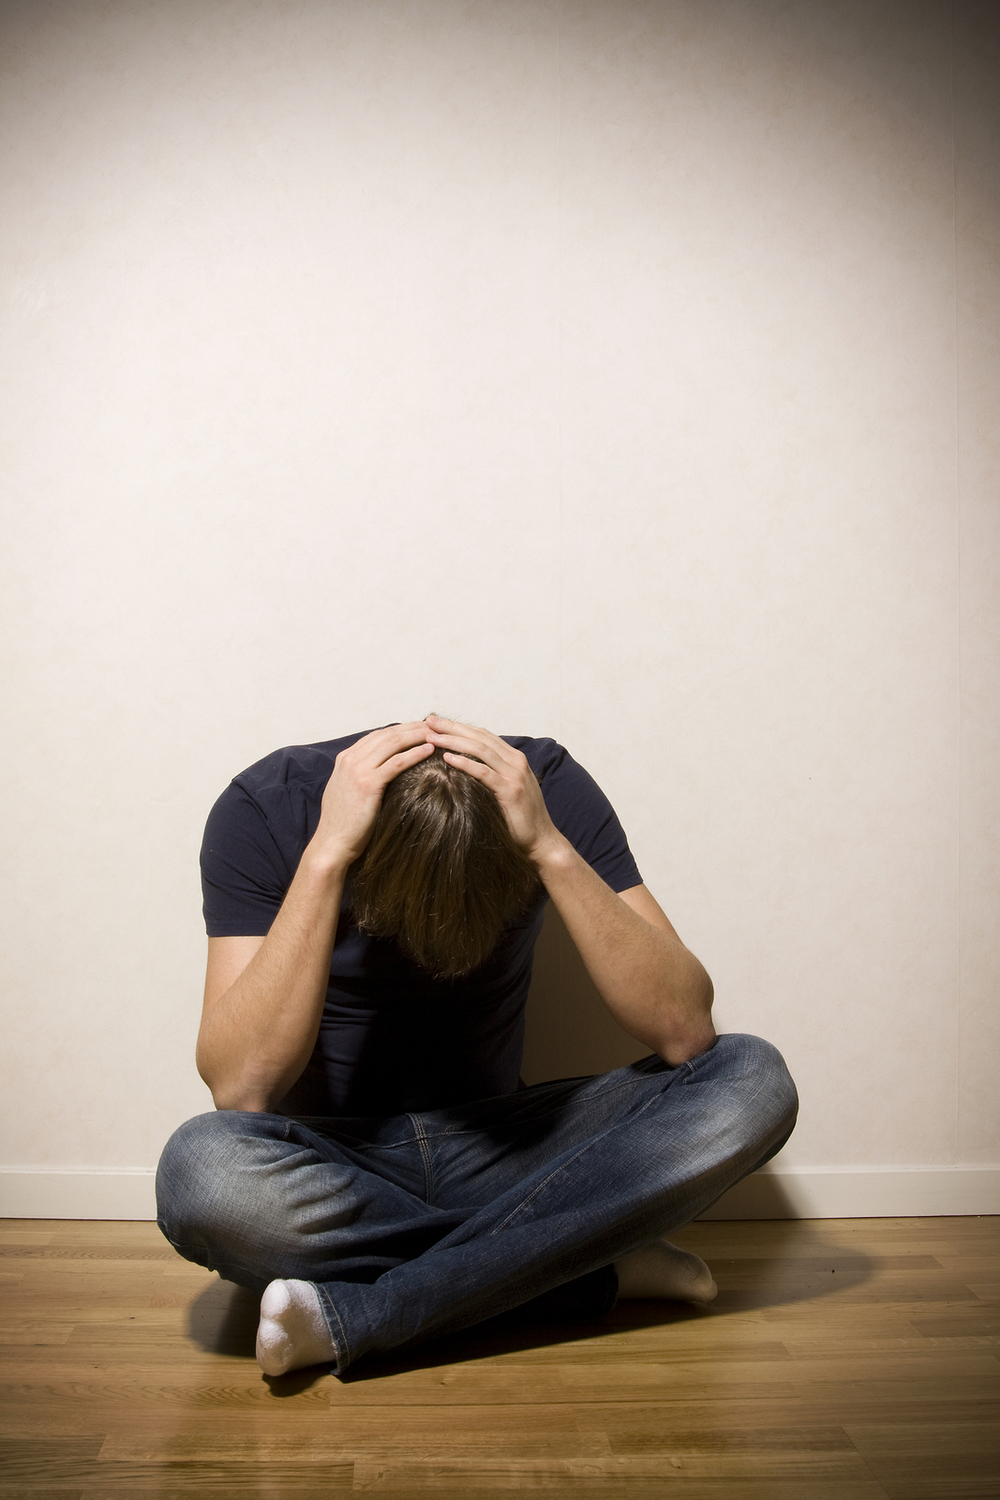 depression in men Clinical depression—in women or men—can cause sadness and a loss of interest in once pleasurable activities but depression can sometimes manifest in different ways in different people.